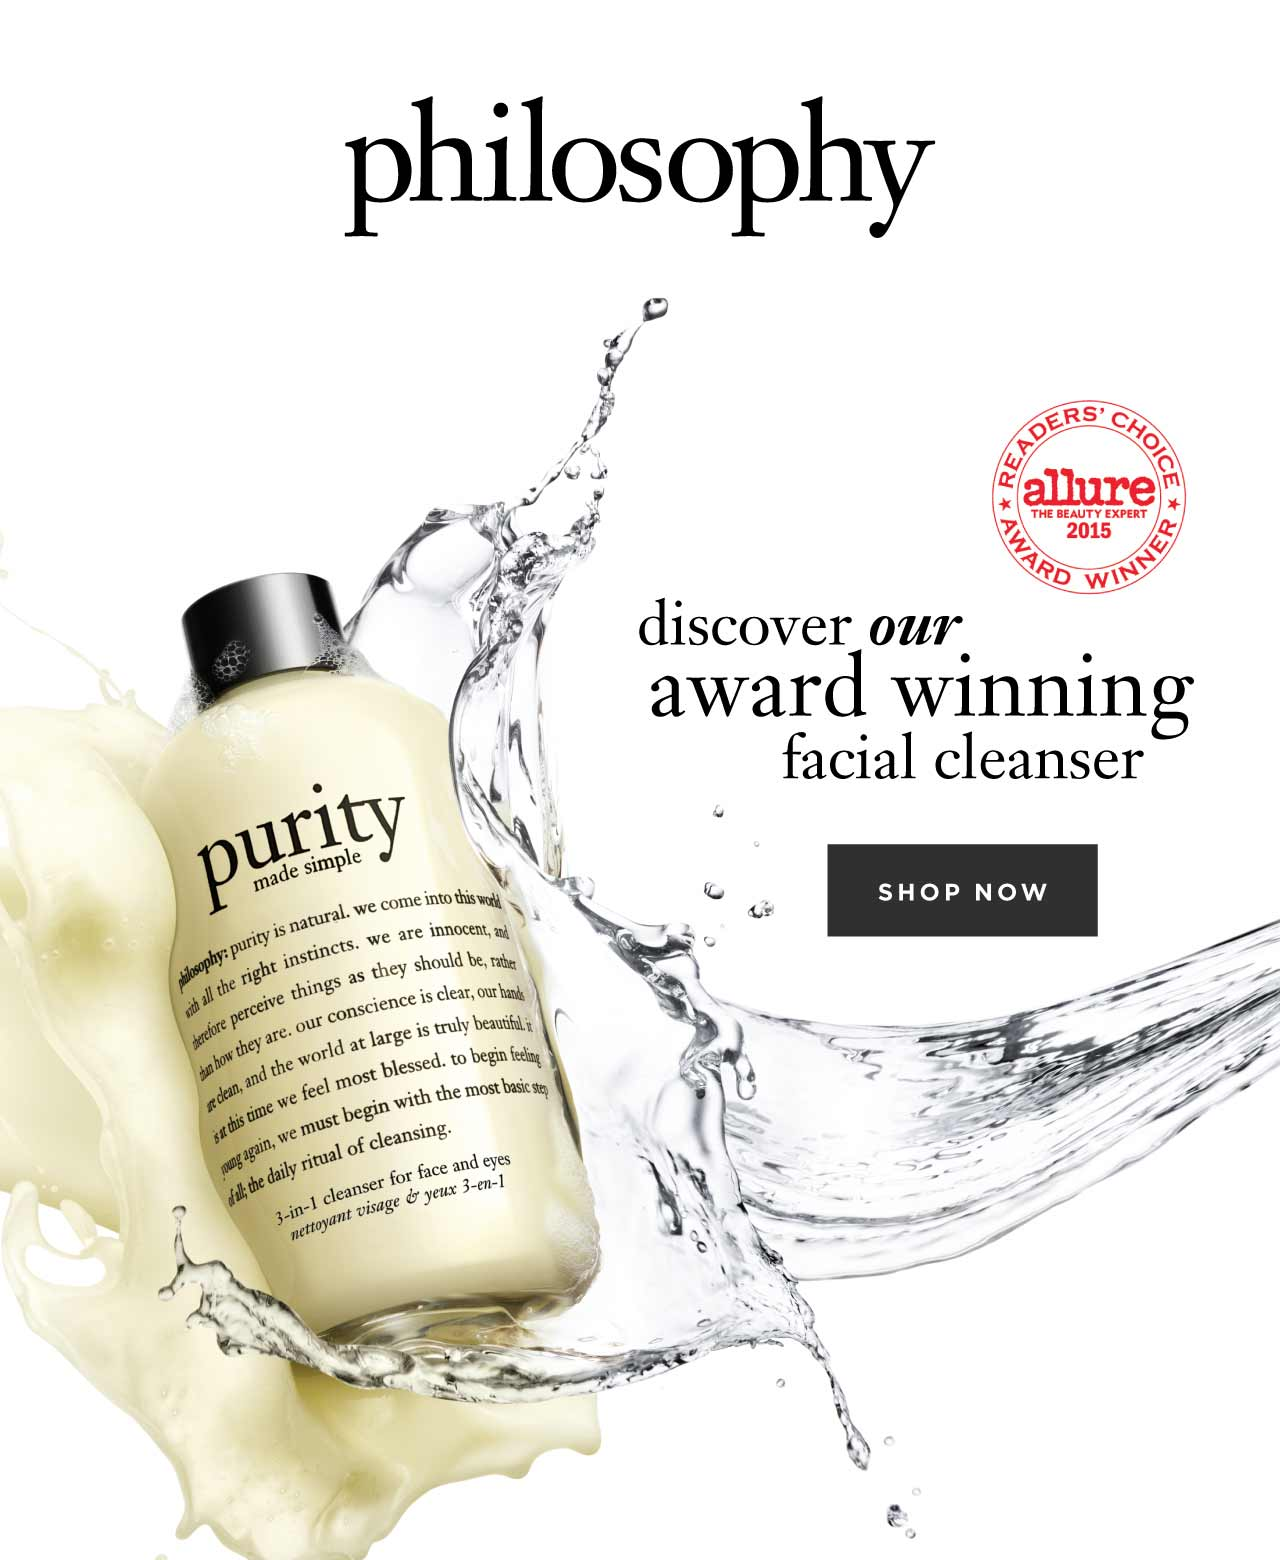 philosophy discover our award winning facial cleanser